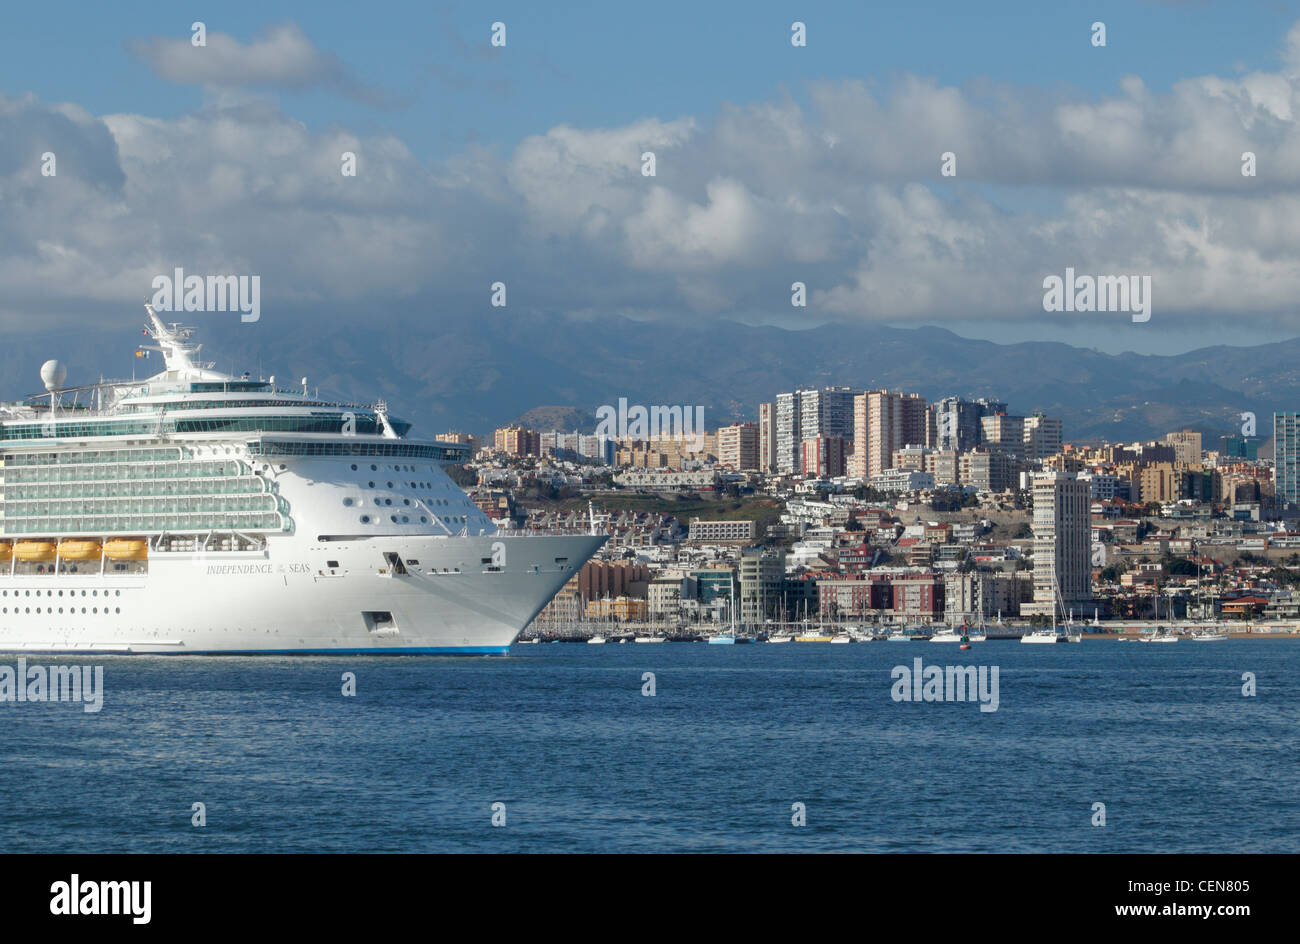 Cruise ship 'Independence of the Seas' arriving at Las Palmas on Gran Canaria, Canary Islands, Spain - Stock Image